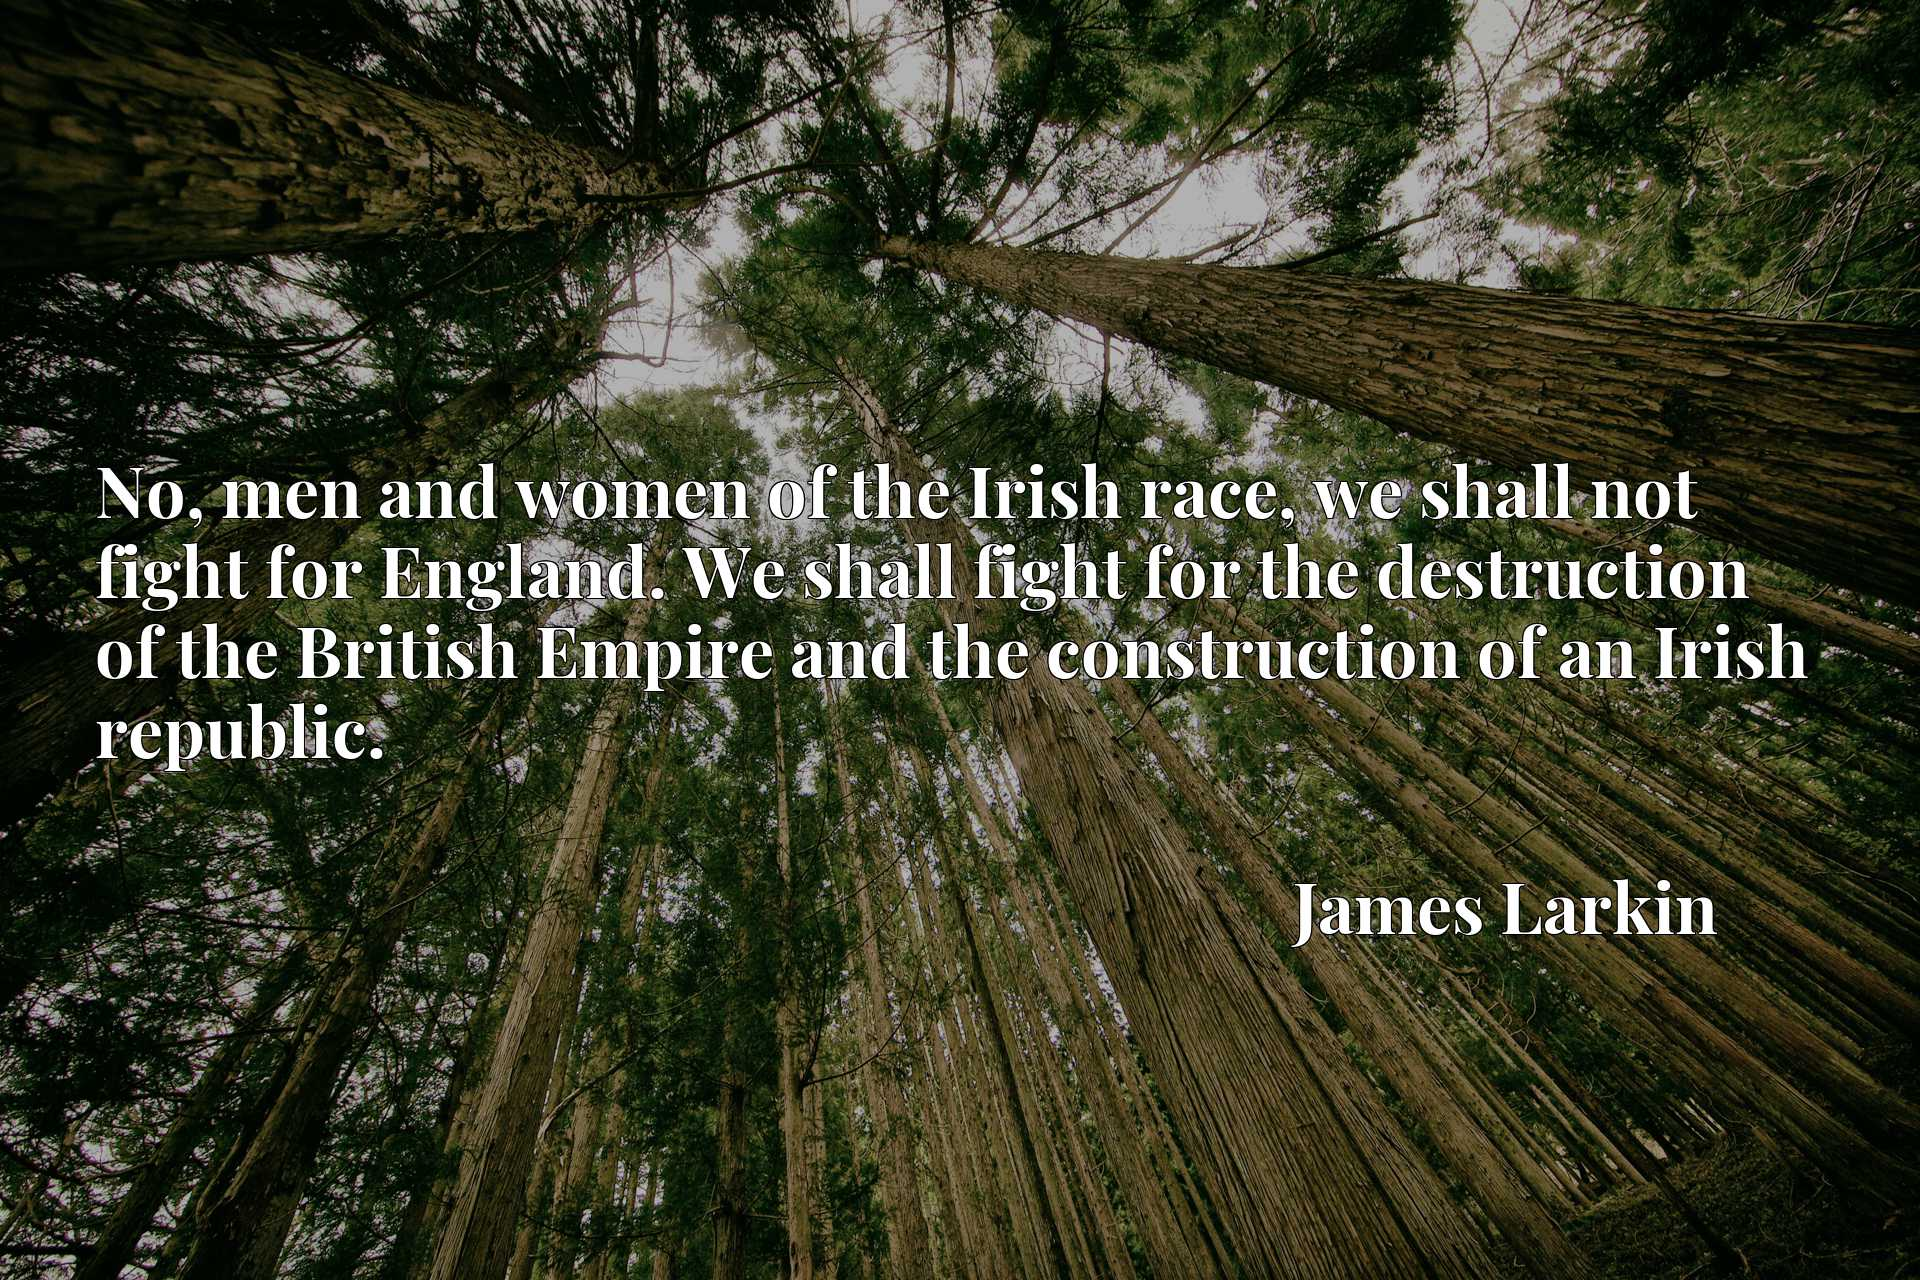 No, men and women of the Irish race, we shall not fight for England. We shall fight for the destruction of the British Empire and the construction of an Irish republic.